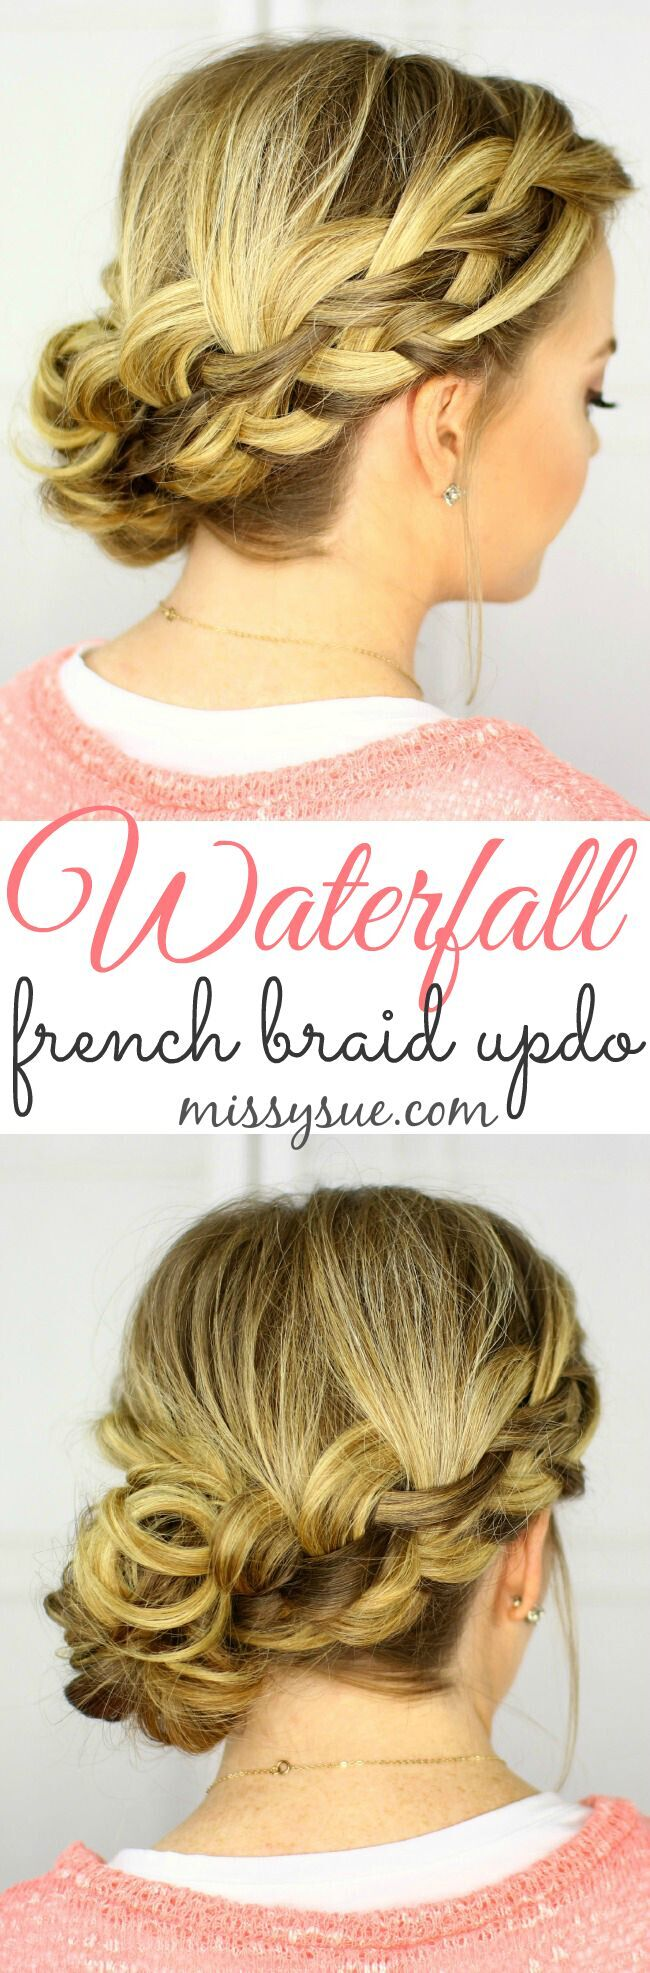 Low, Side Updo Hairstyles - Waterfall French Braid Updo